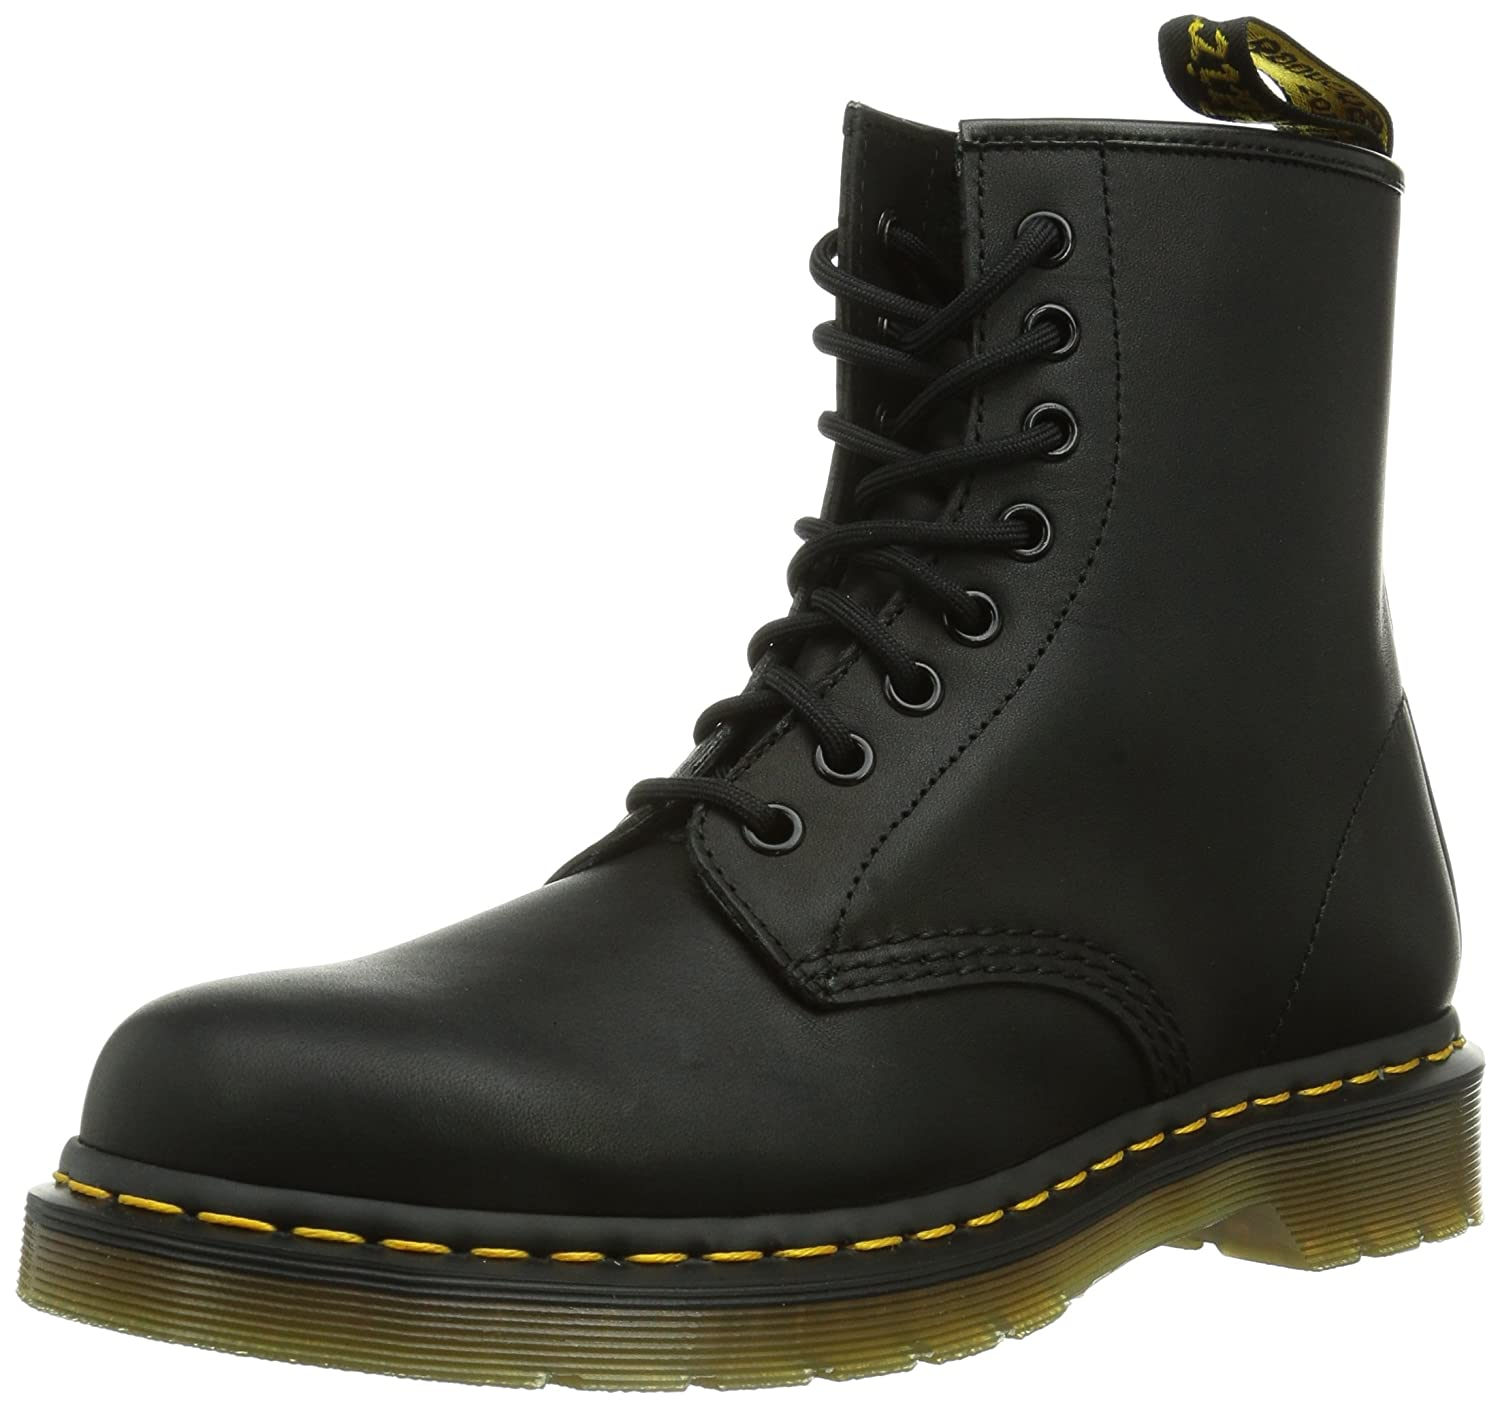 Dr. Martens Men's 1460 Combat Boot, 8.5 B(M) US Women/7.5 D(M) US Men B00BSXVHW8 3 Medium UK (US Women's 5 US)|Black Greasy